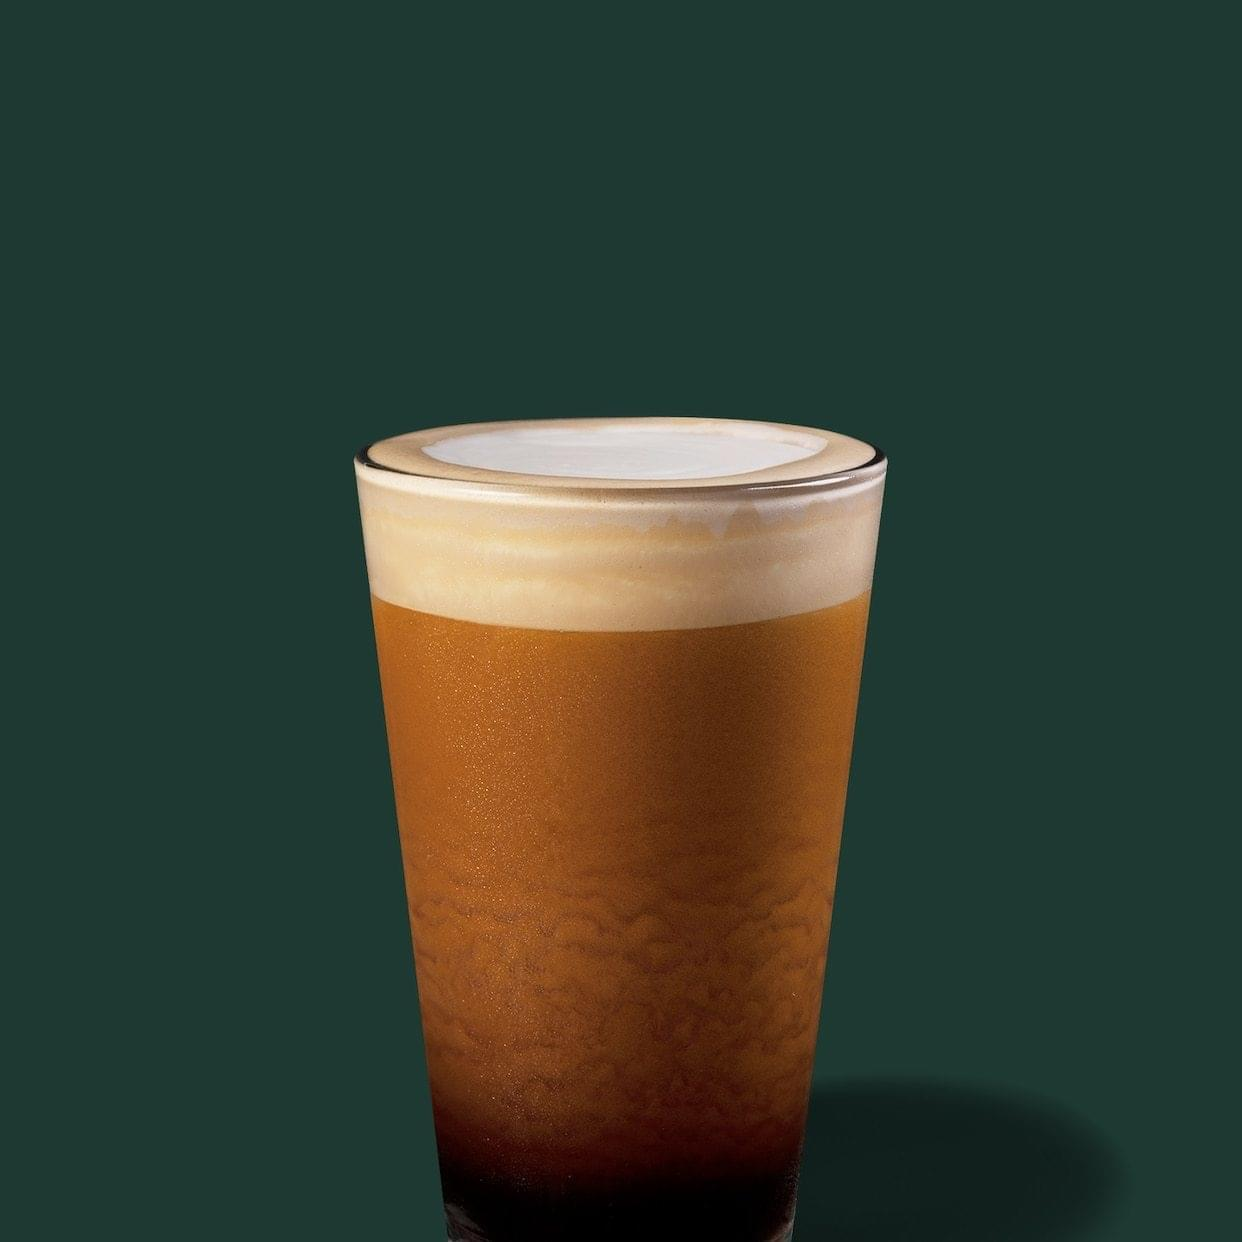 Starbucks Salted Caramel Cream Nitro Cold Brew Nutrition Facts